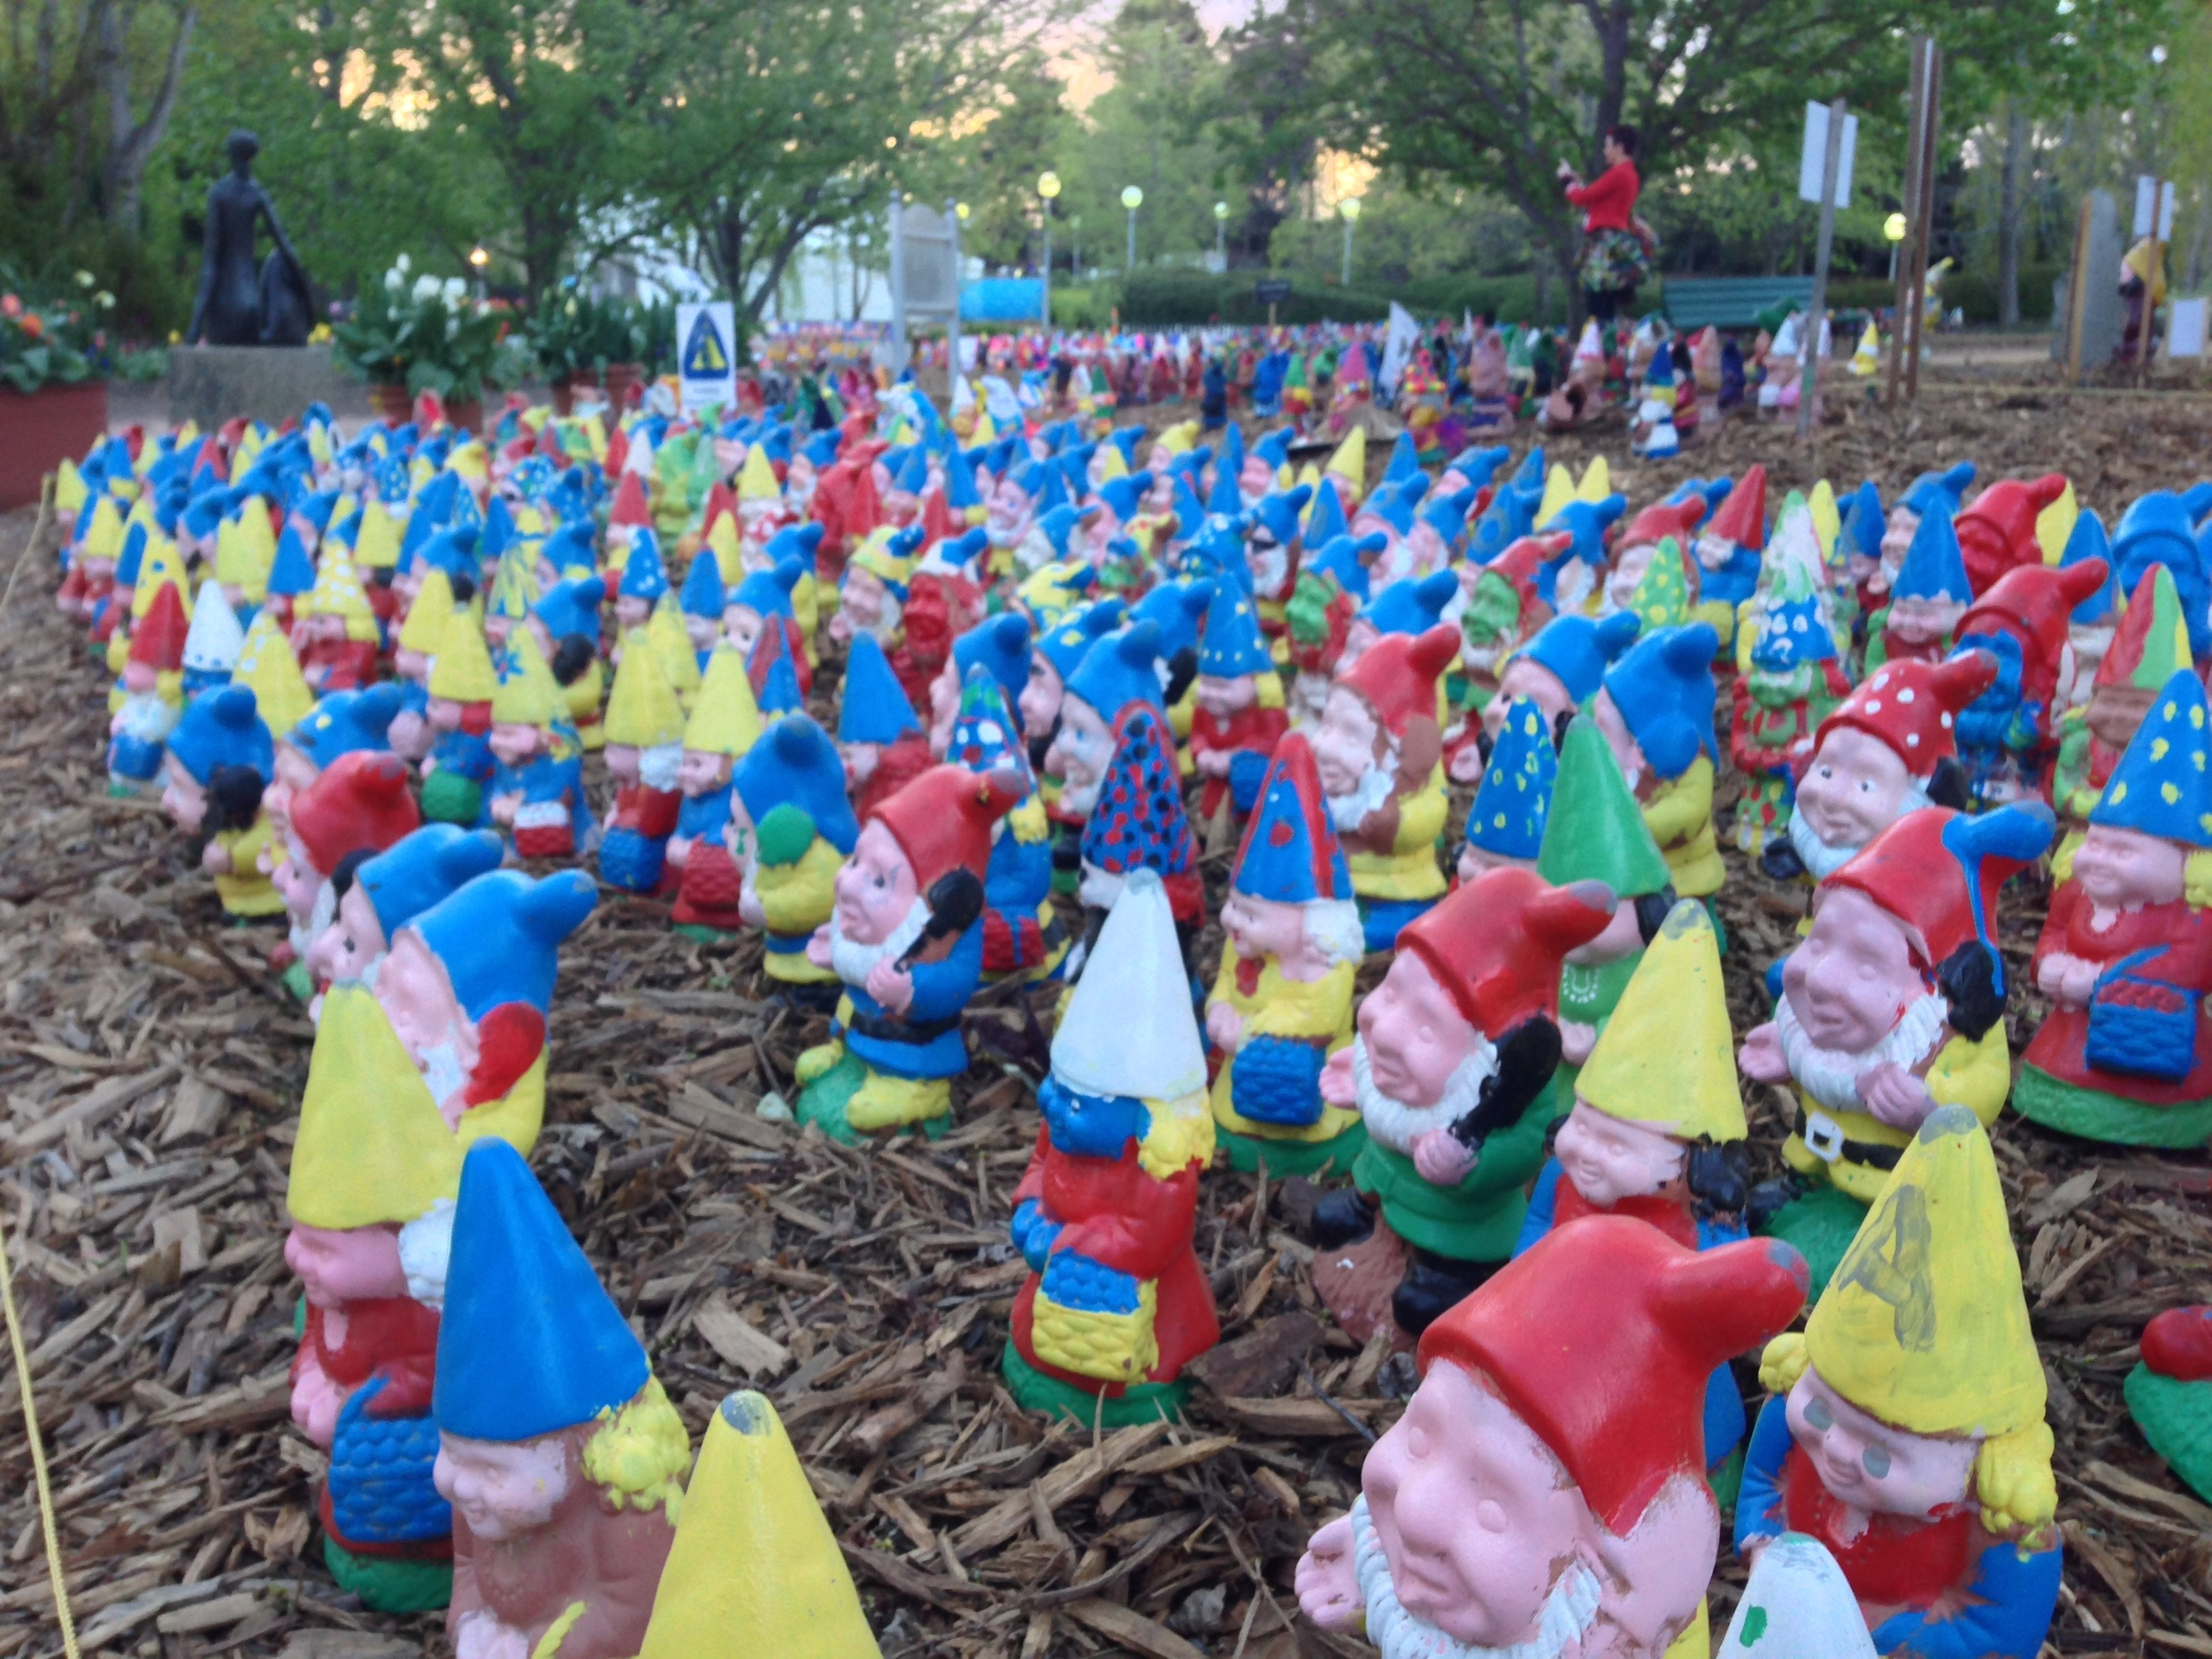 Cal in the distance protected by her army of gnomes.